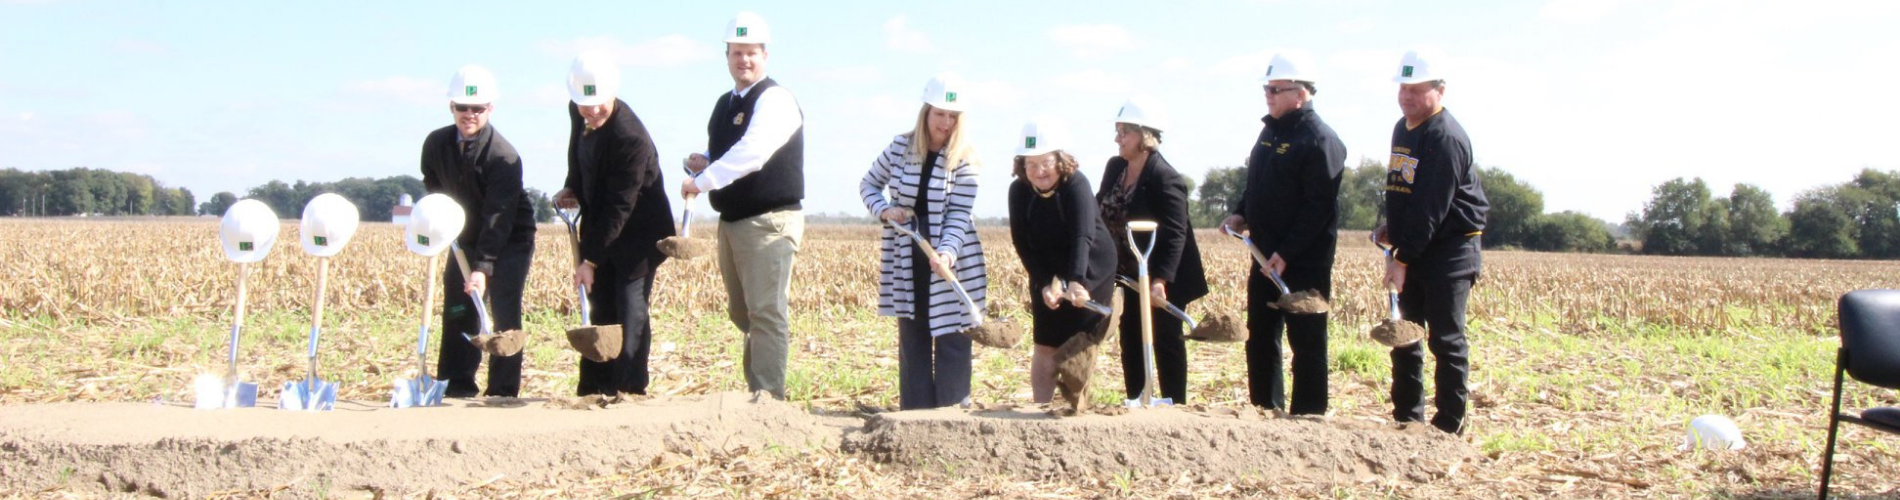 Clark-Shawnee Board Members broke ground on the new preschool through 6th grade facility on Oct. 13.